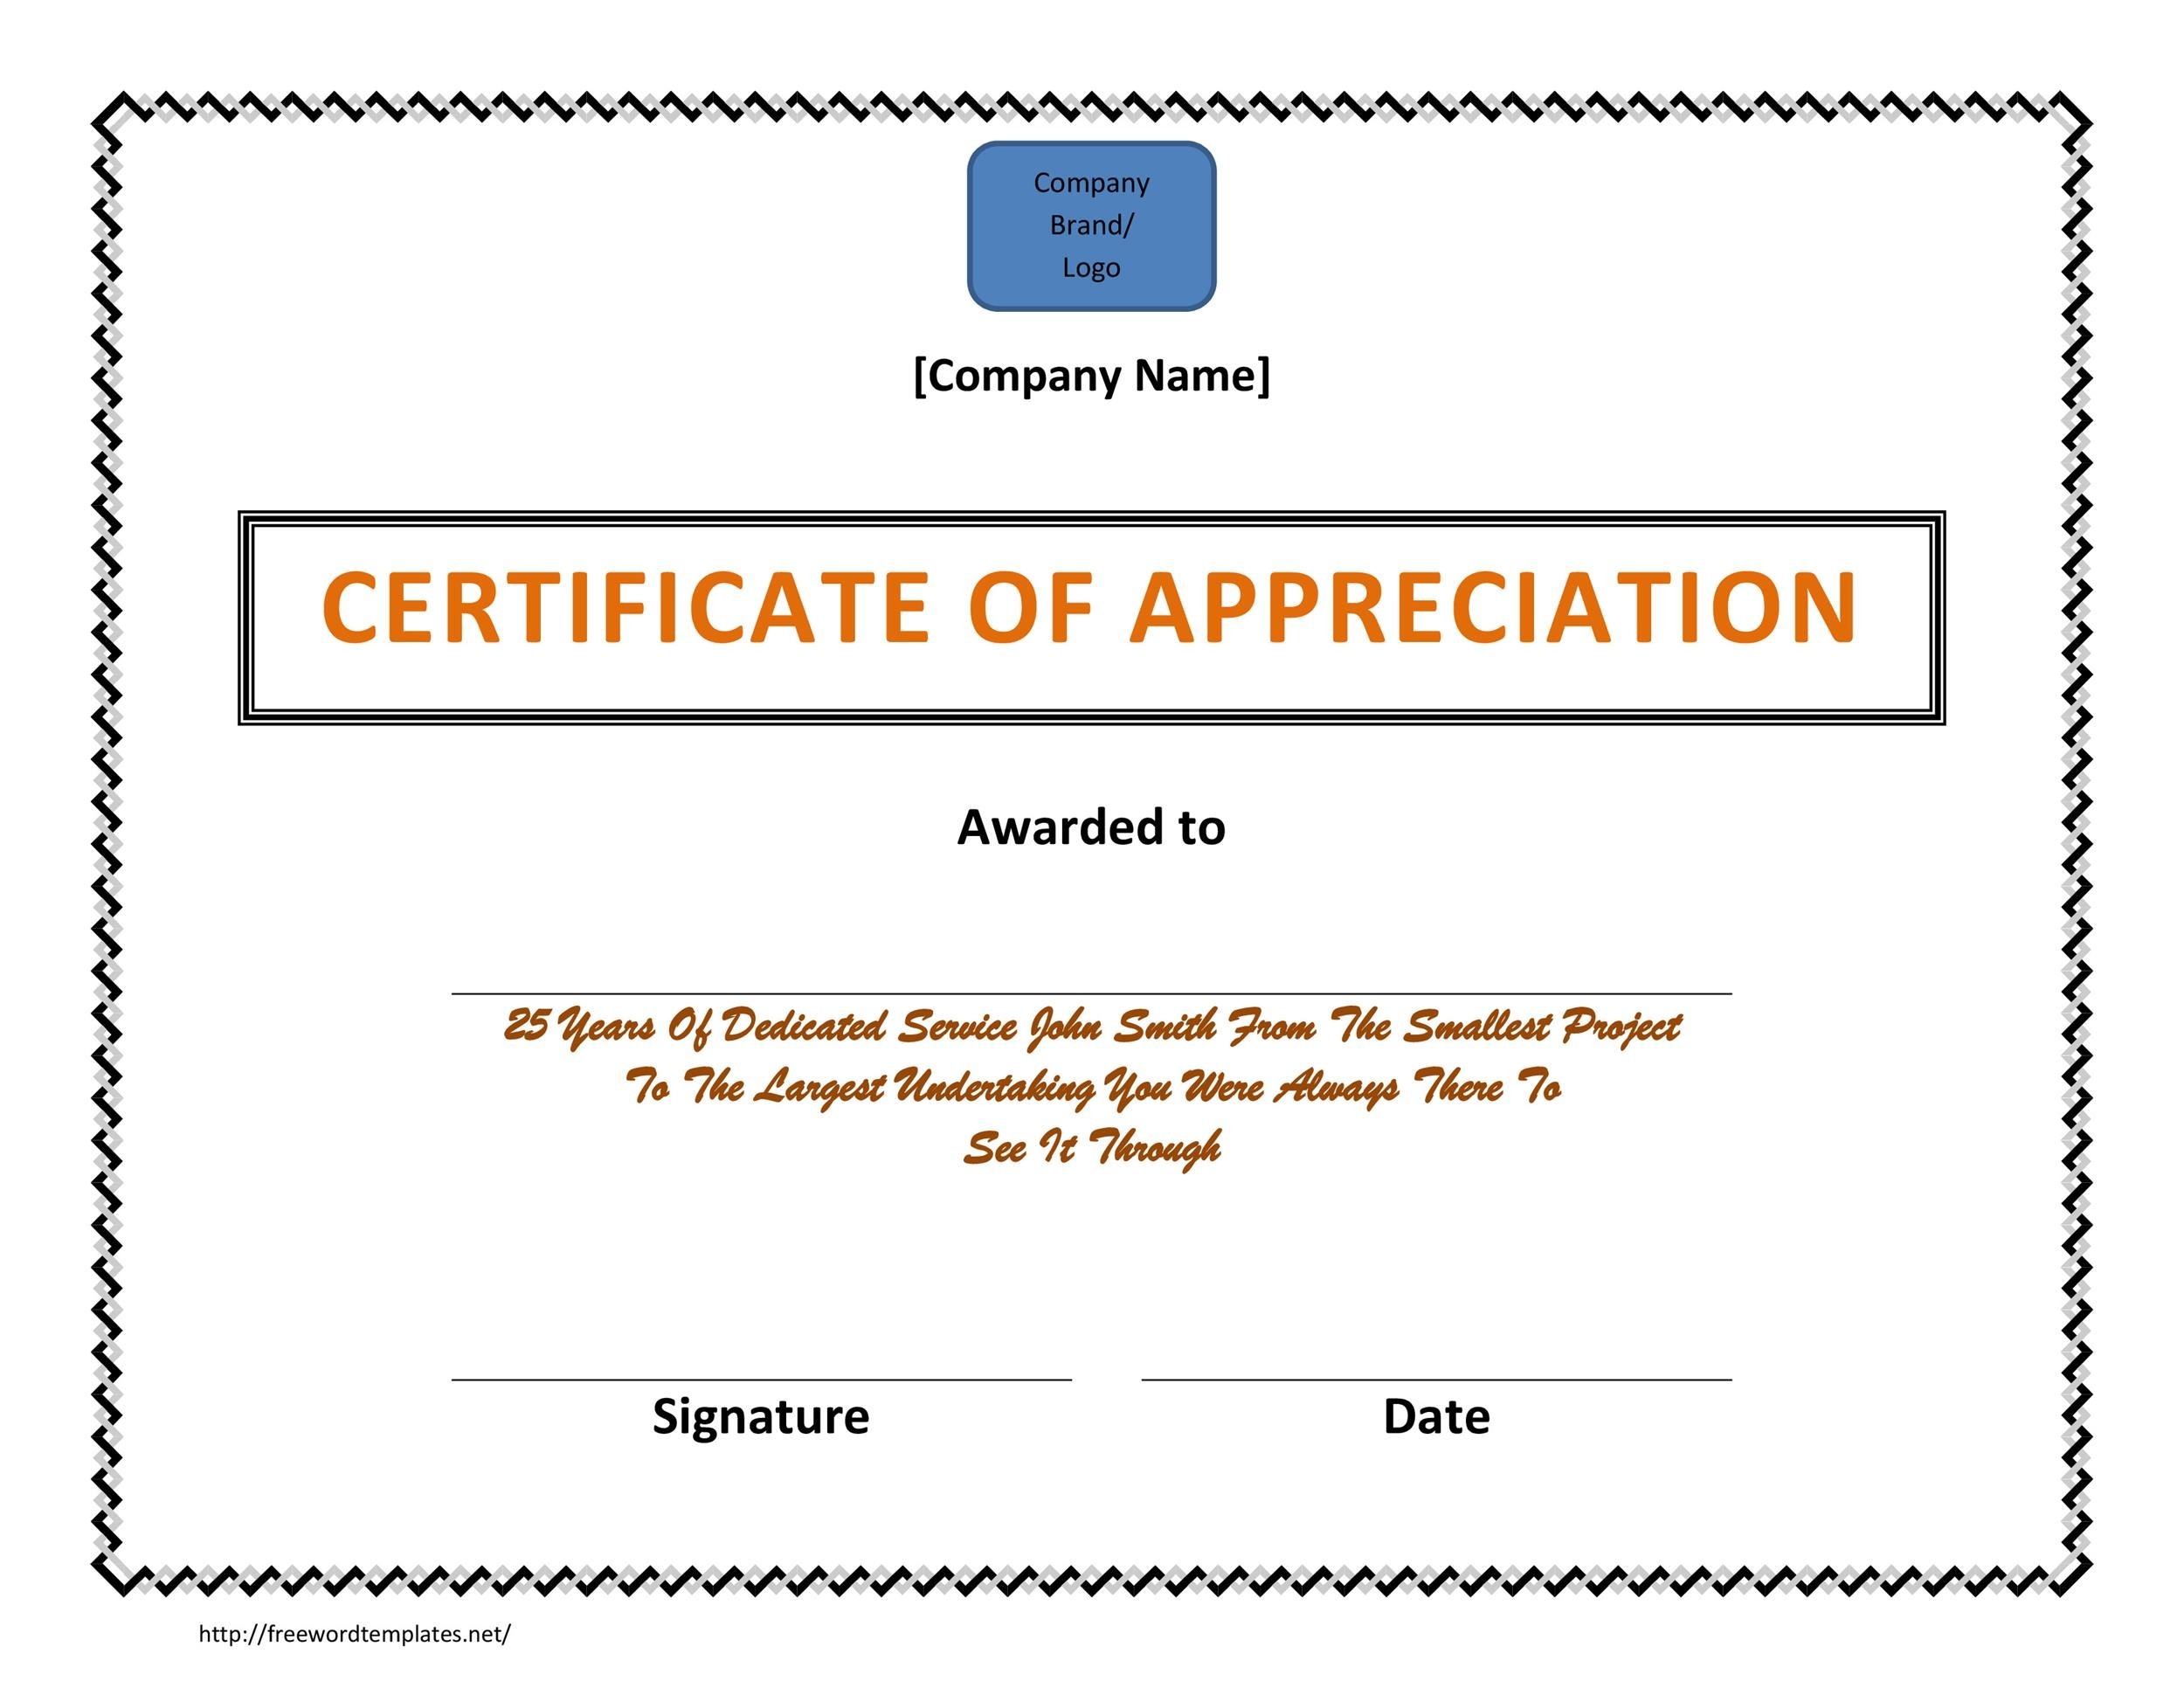 30 free certificate of appreciation templates and letters printable certificate of appreciation 05 spiritdancerdesigns Gallery